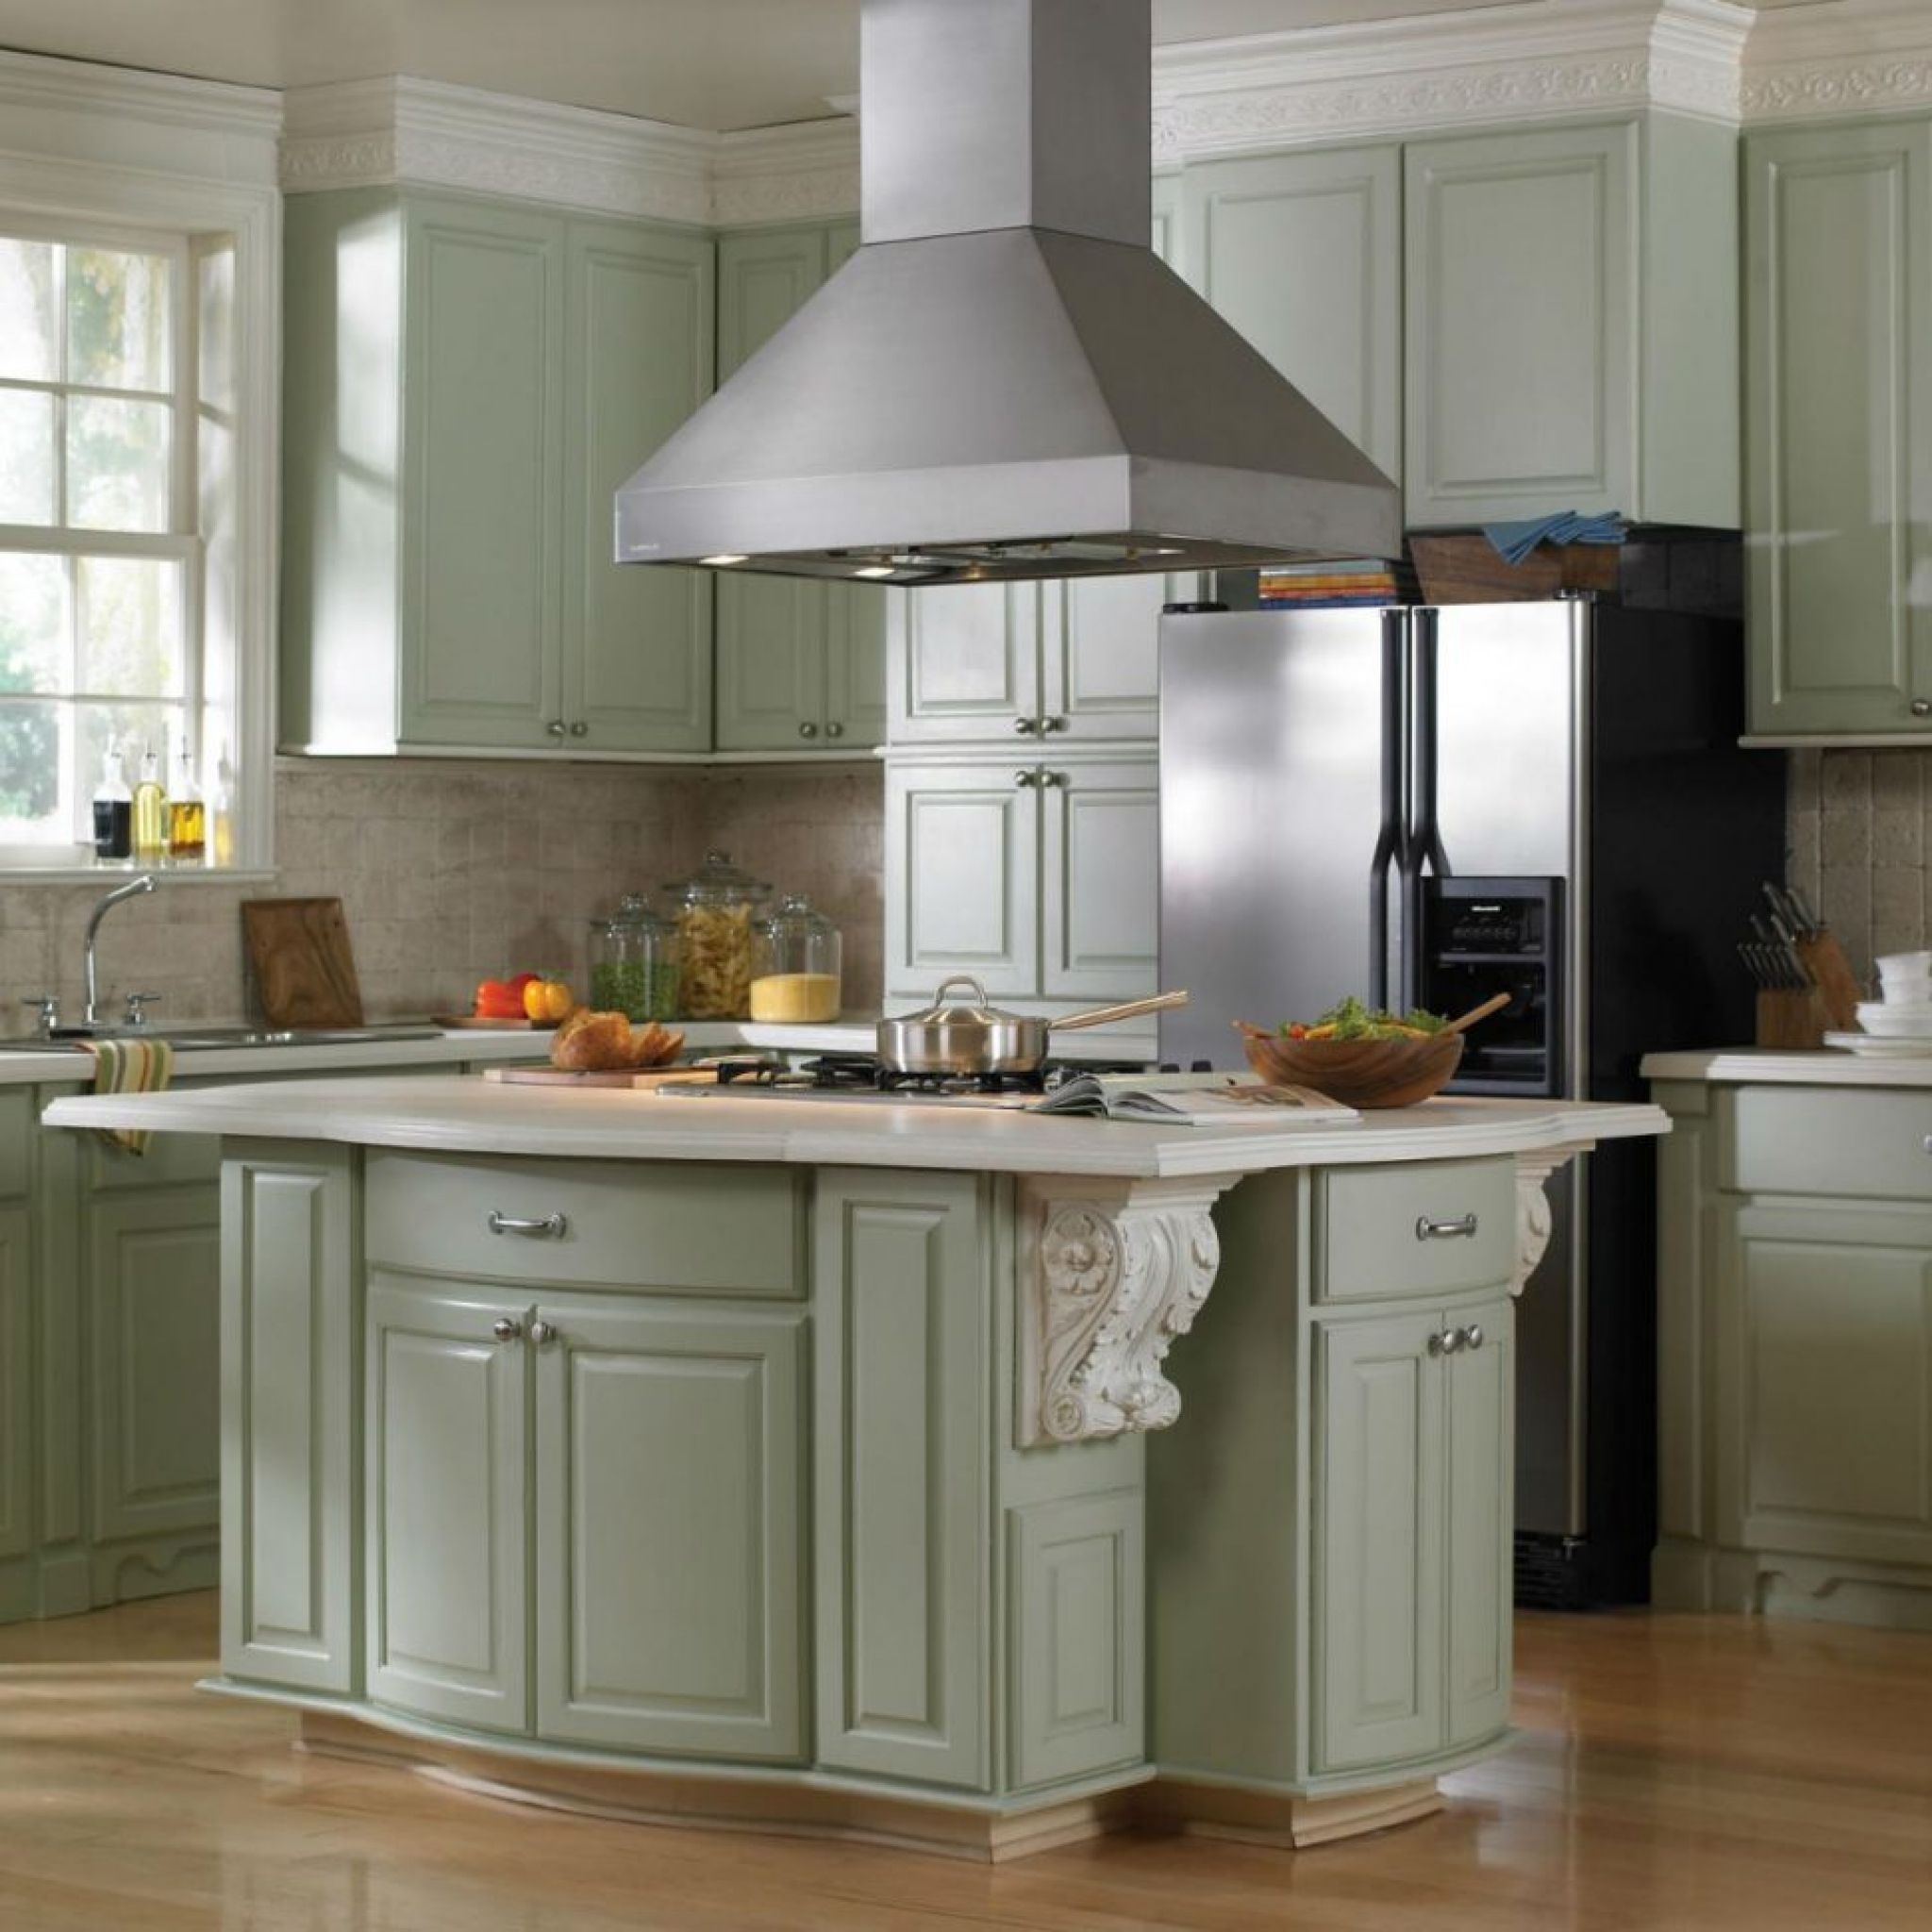 Outdoor Kitchen Exhaust Hoods Best Paint For Interior Check More At Http Www Mtbasics Com Outdoor Kitchen Exhaust H Kitchen Exhaust Outdoor Kitchen Kitchen